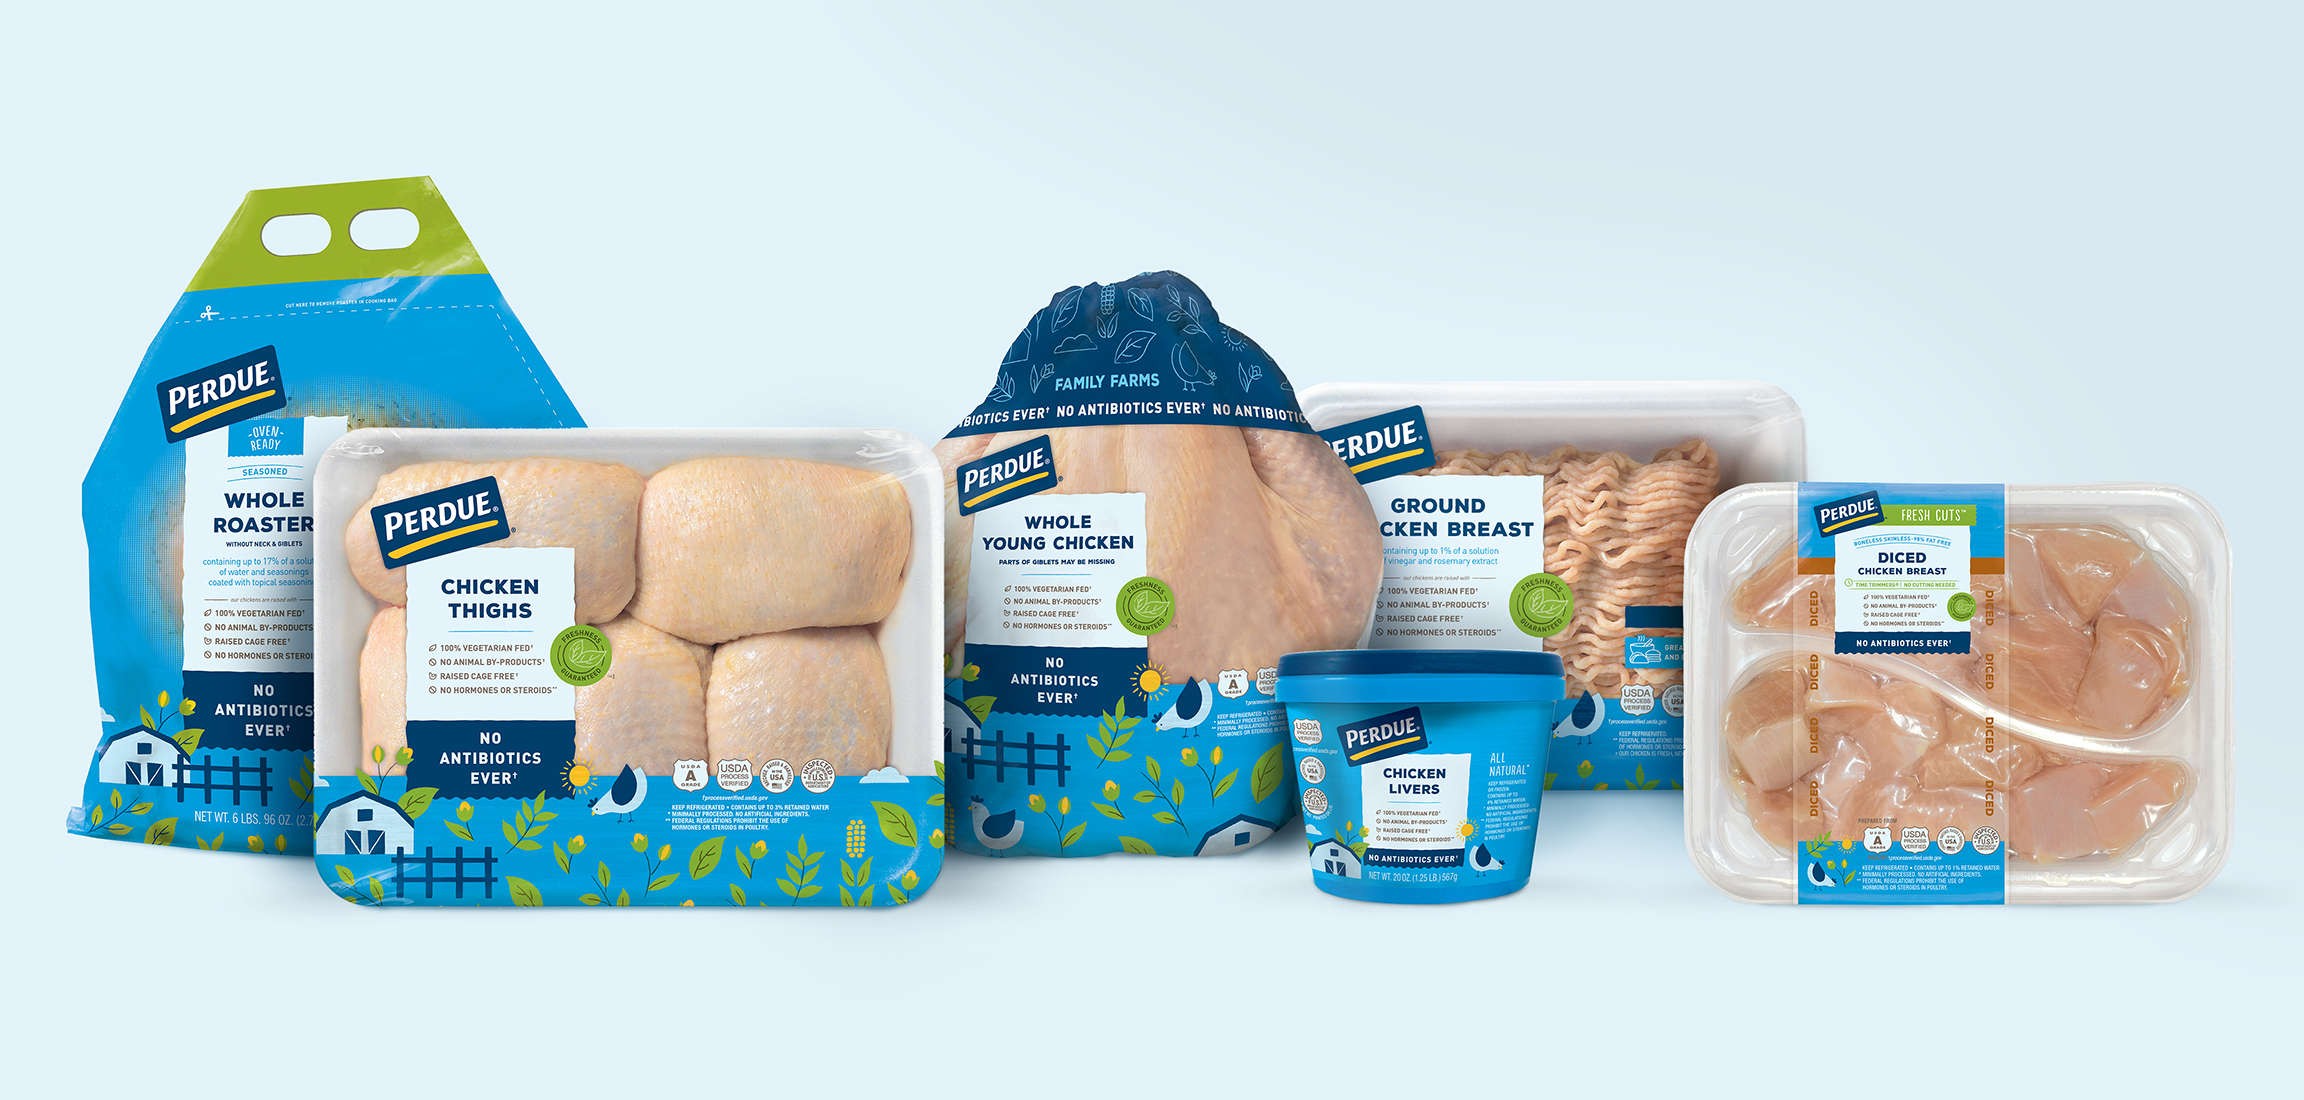 Perdue chicken packaging whole chicken lineup